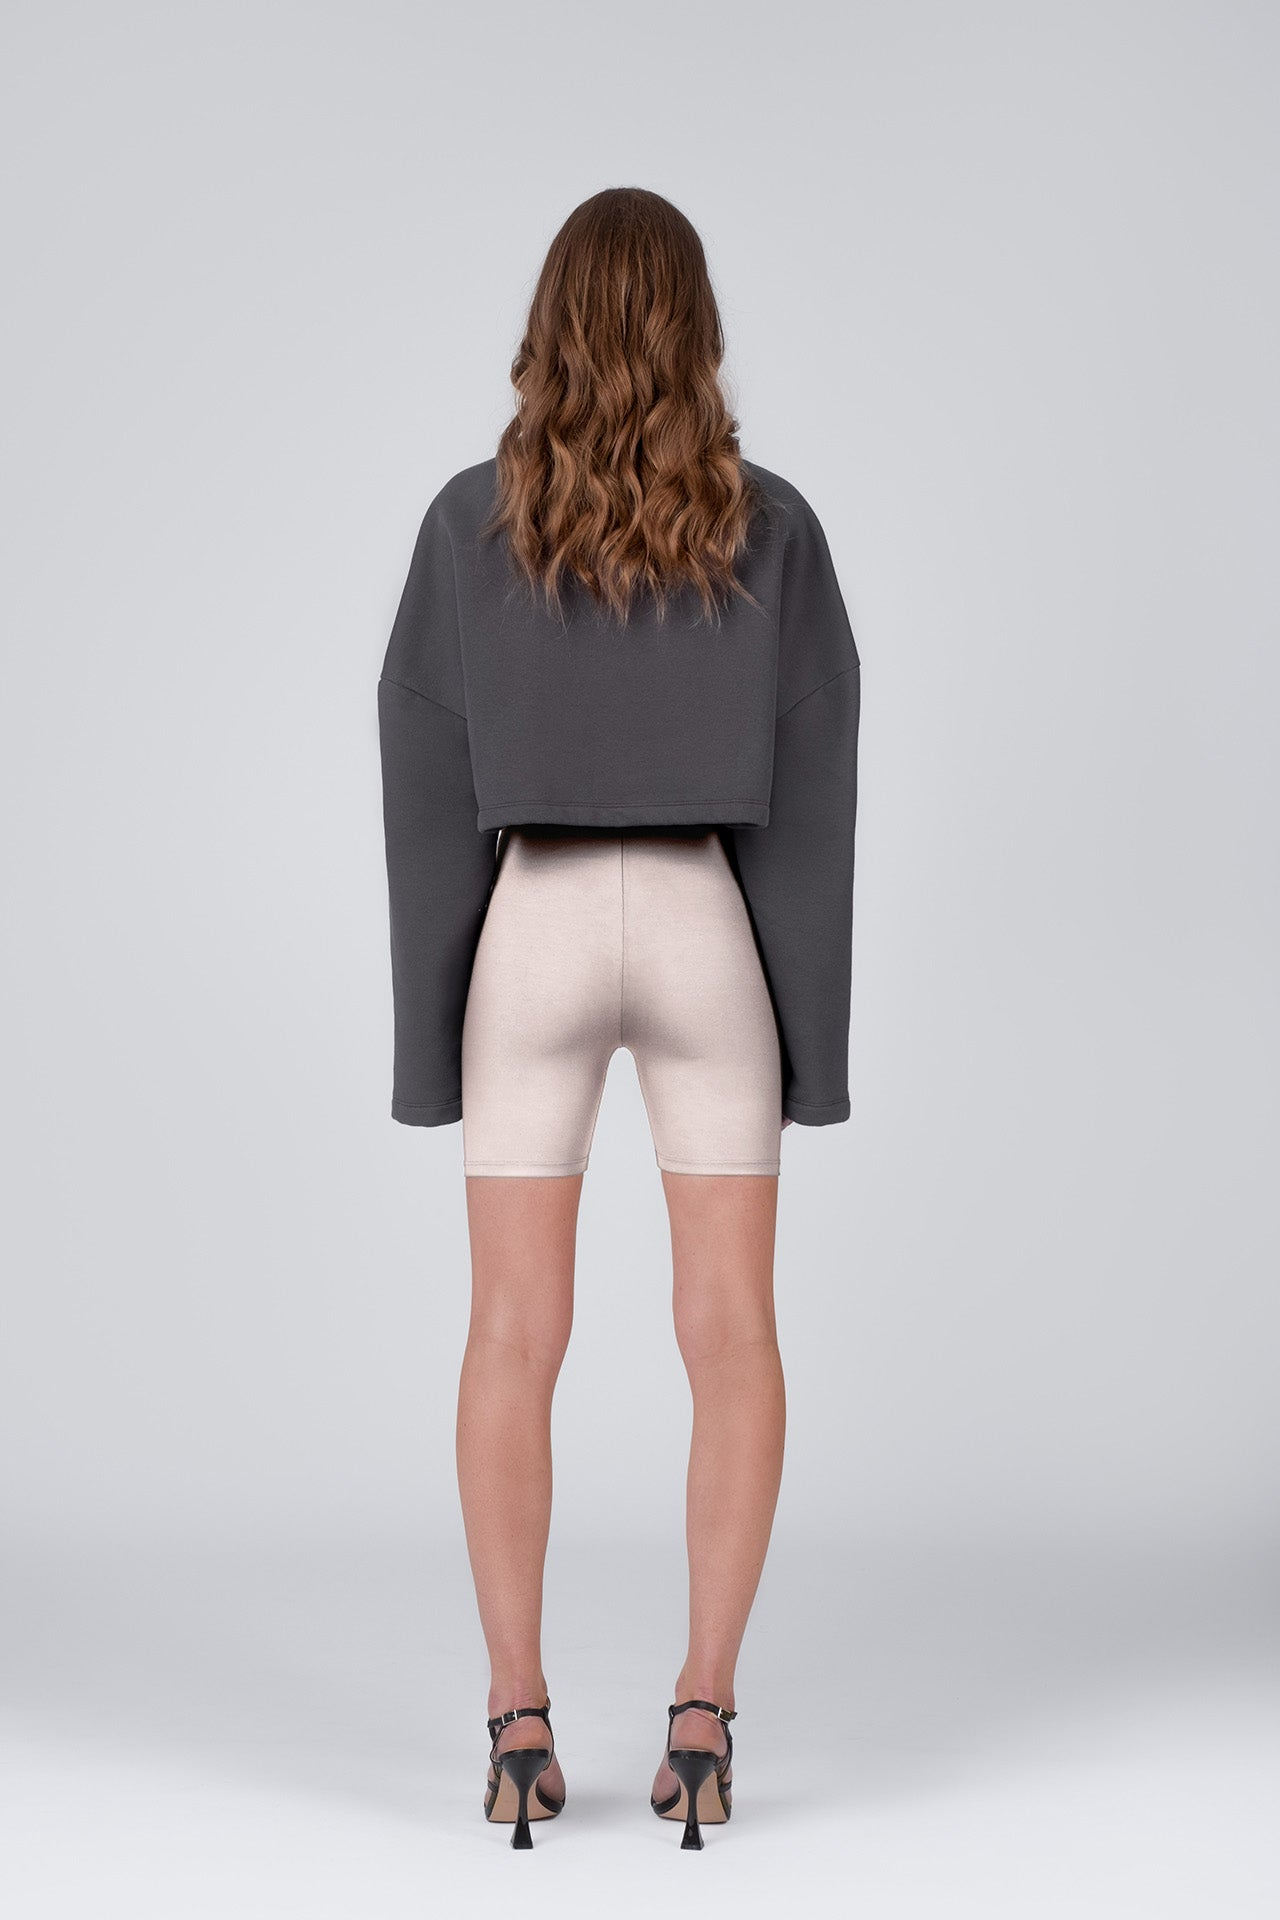 BIKE SHORTS 01 - light beige